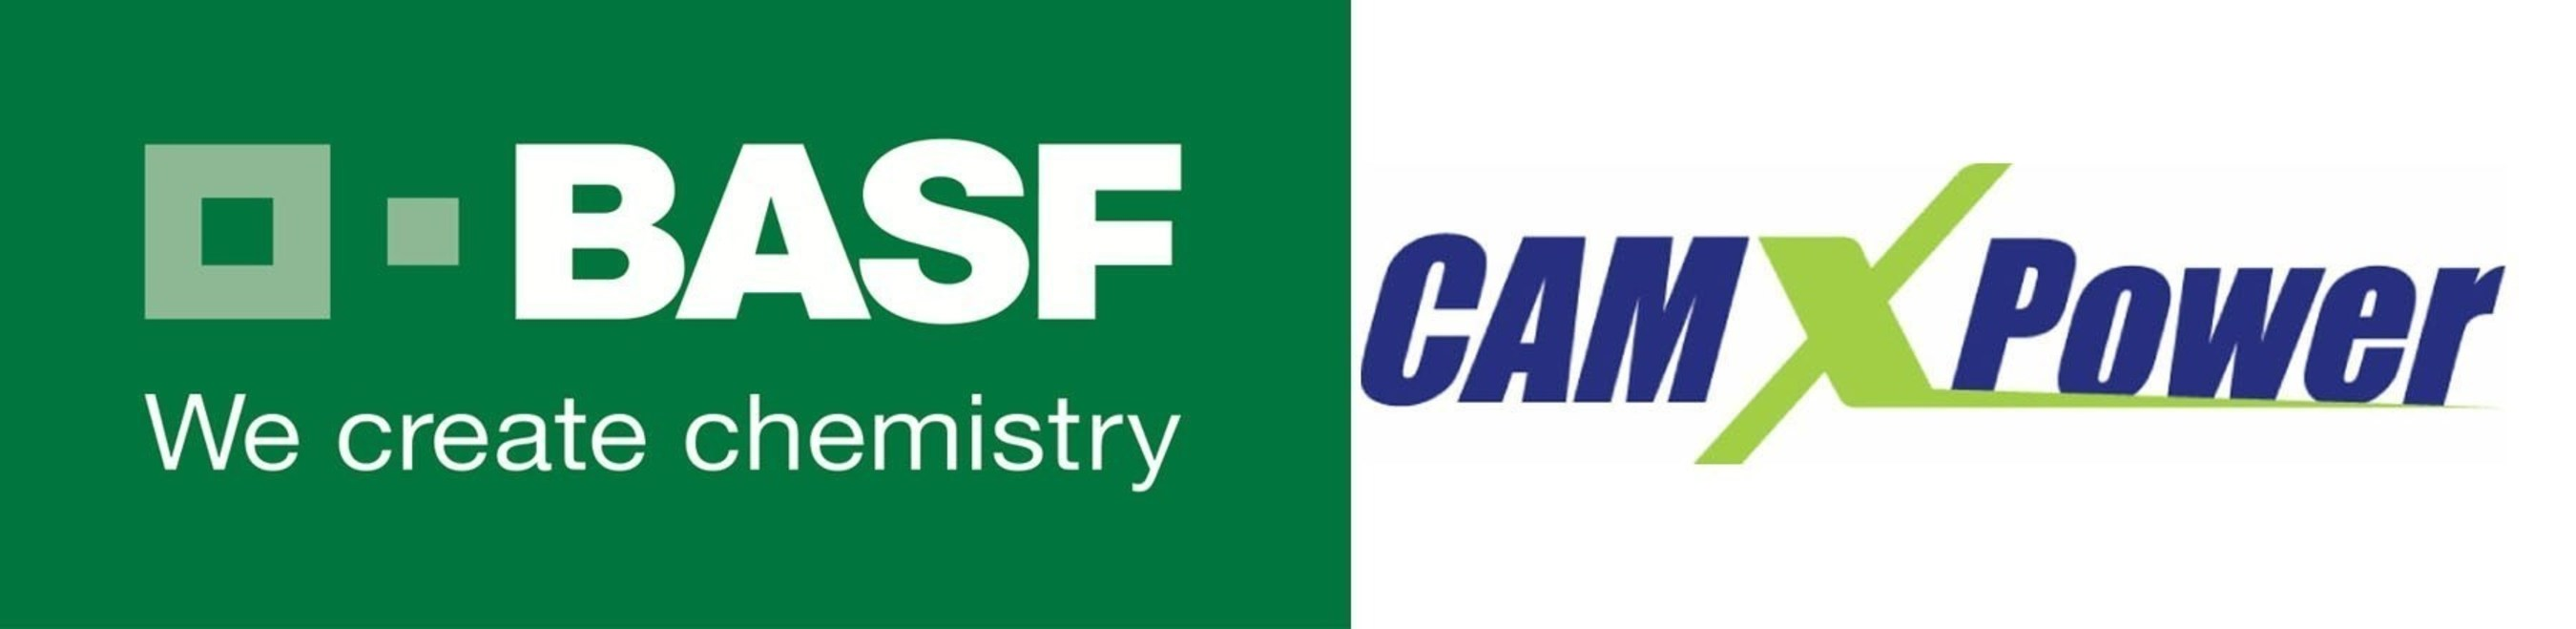 CAMX Power and BASF Logos